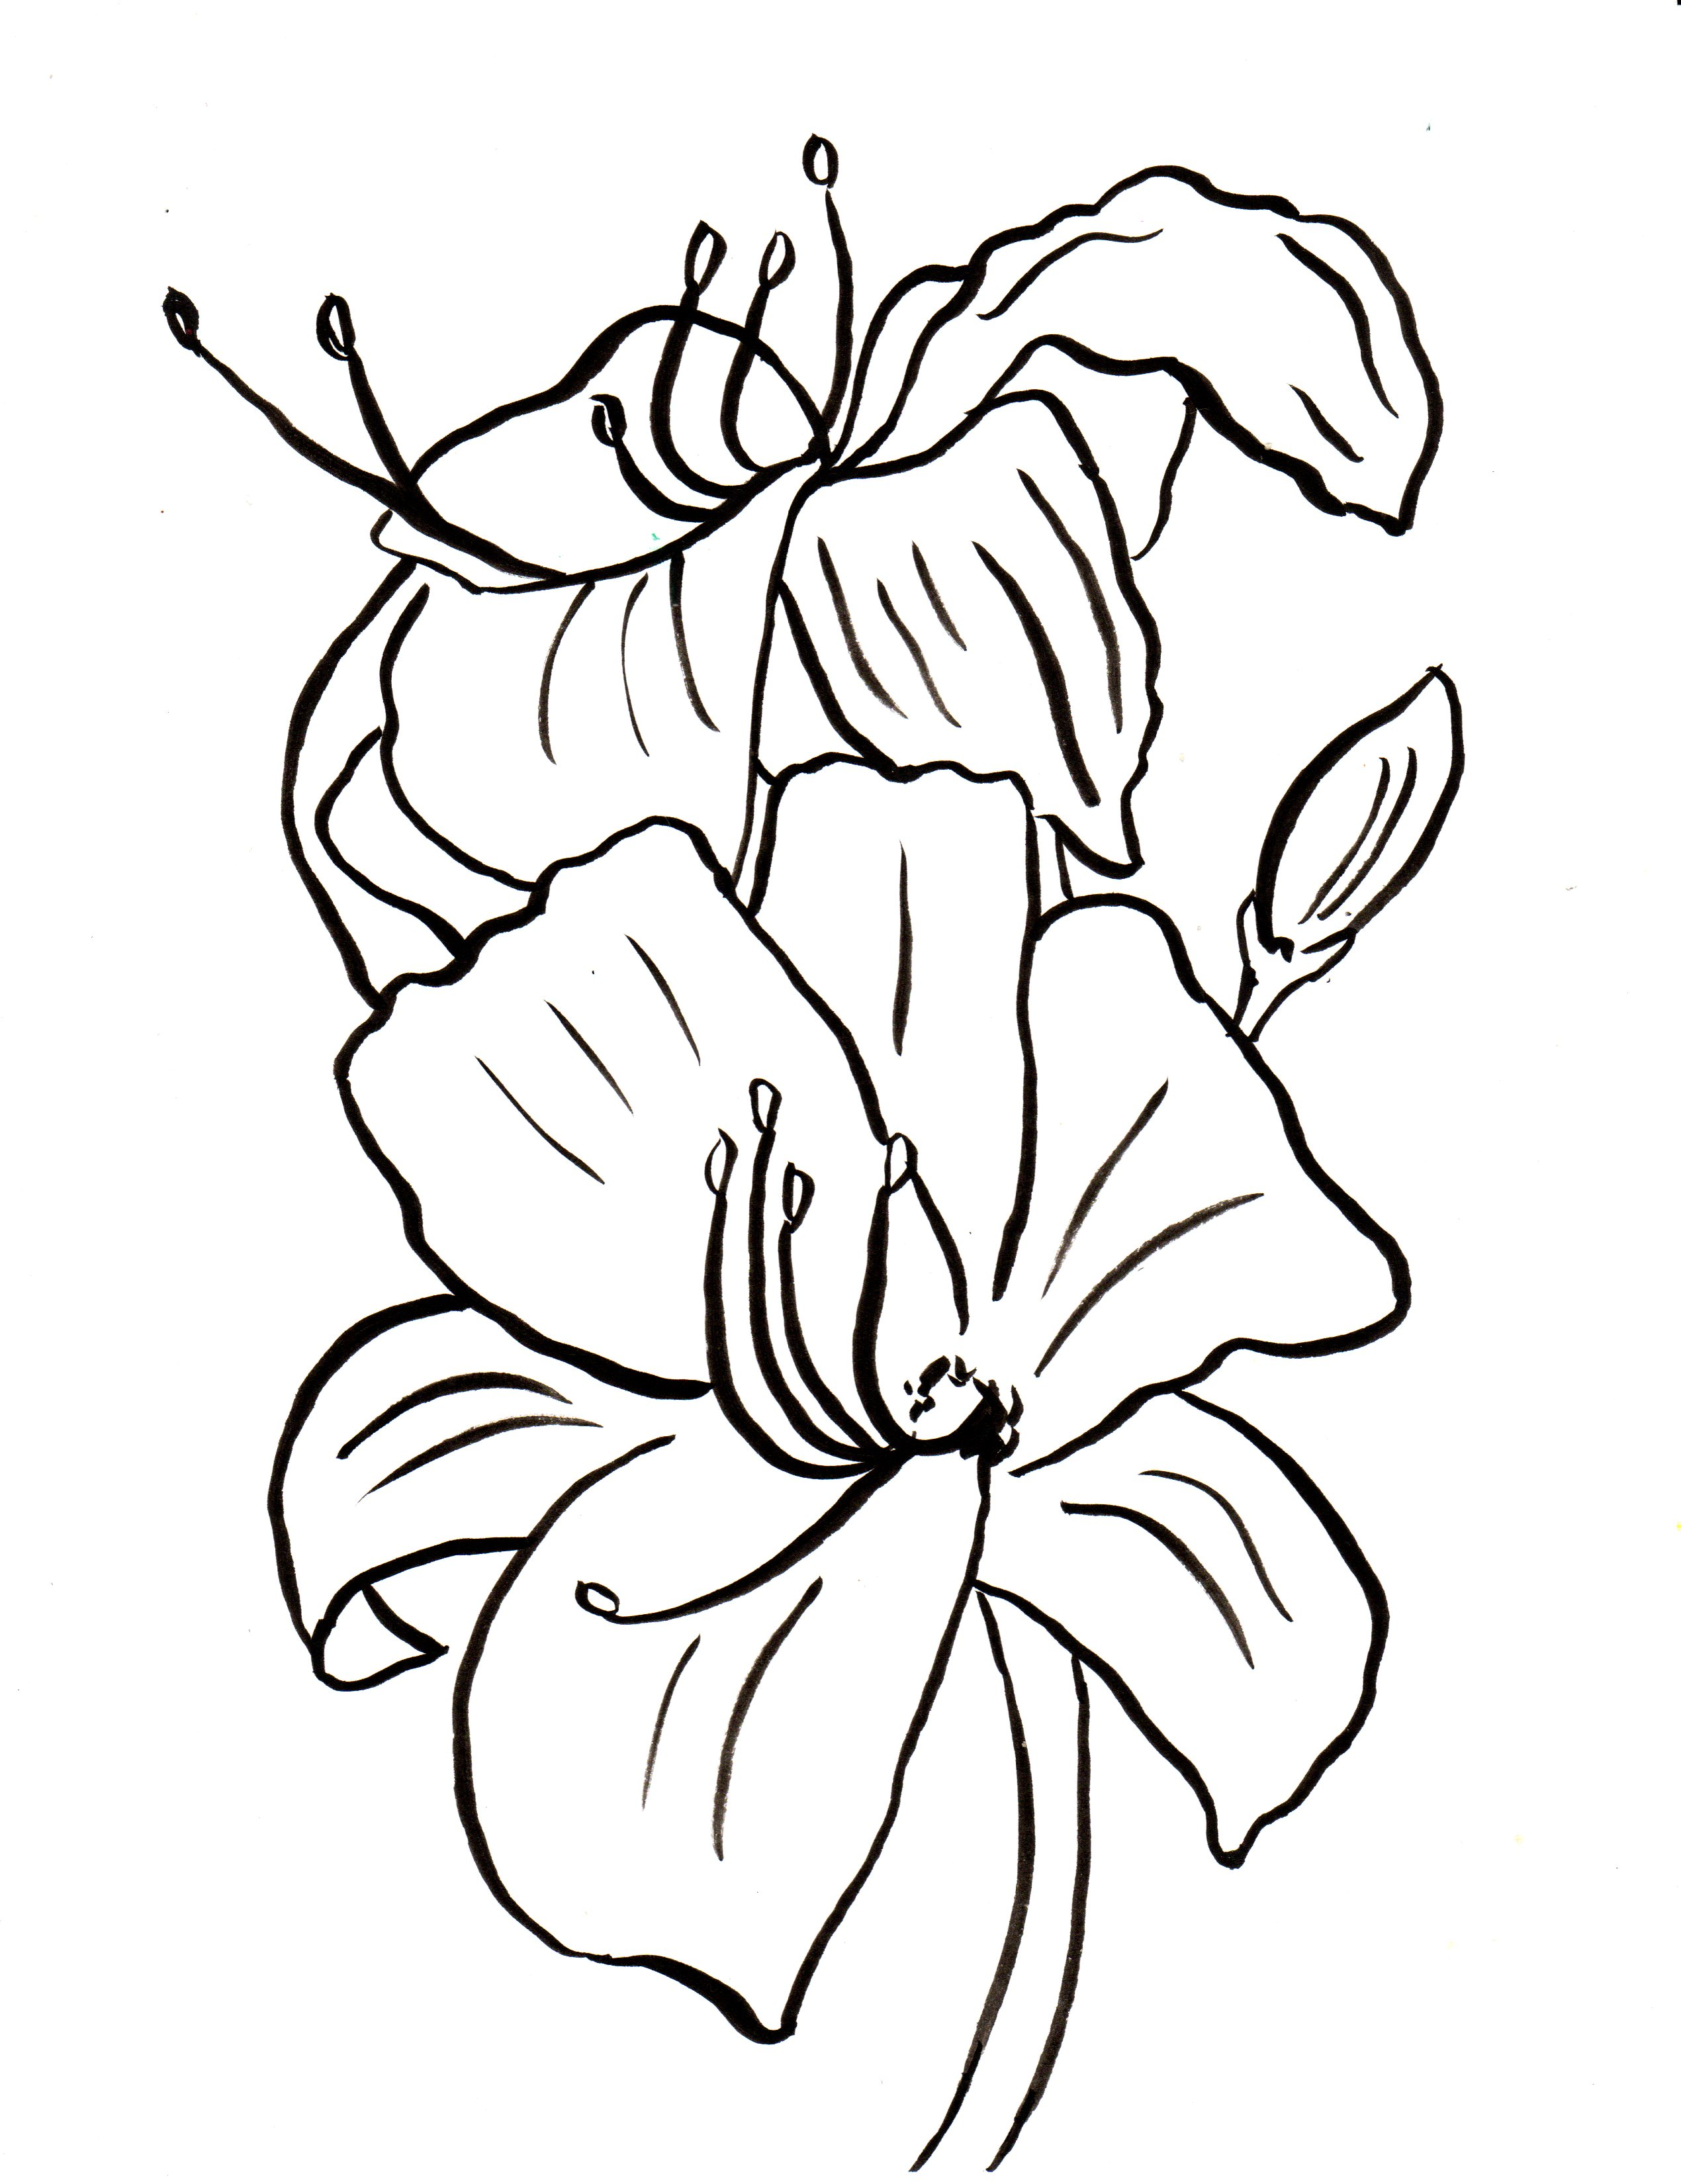 lily coloring book pages - photo#5